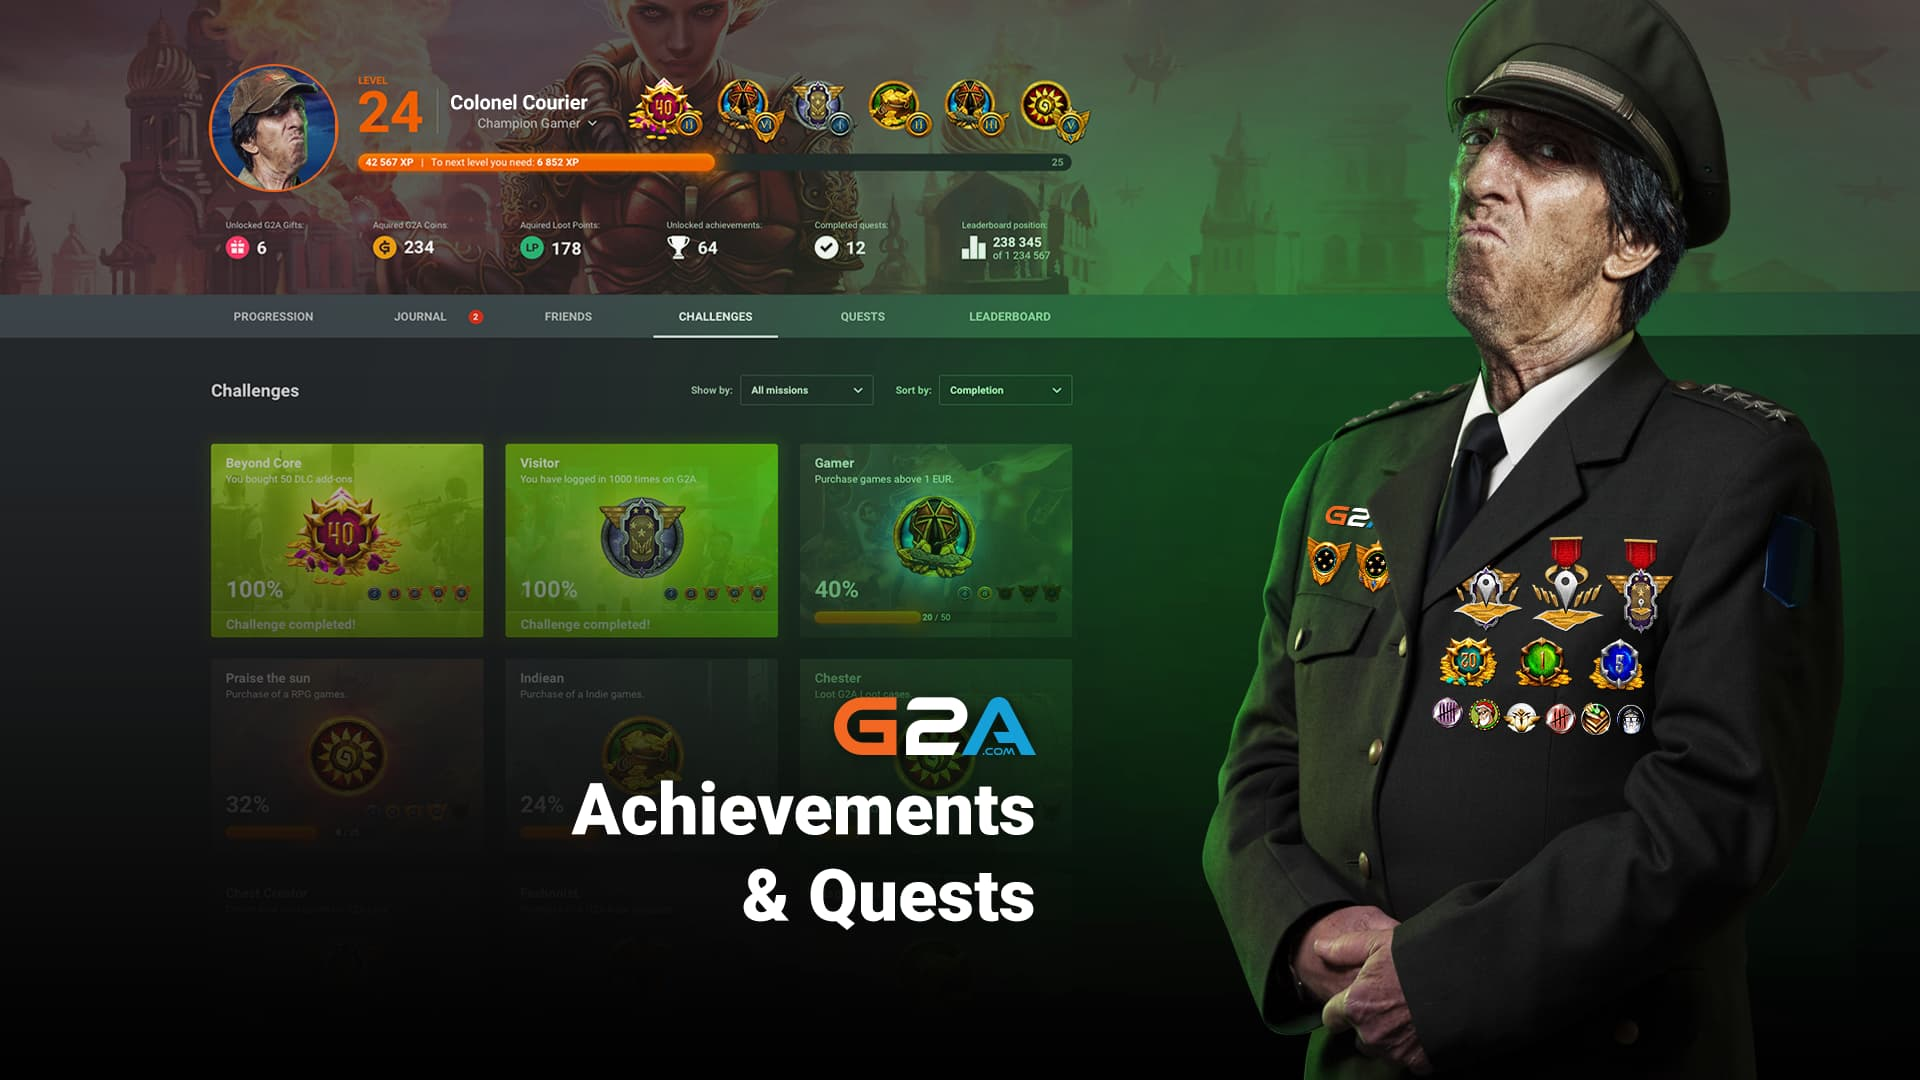 A new, interactive achievement system for G2A users is live!